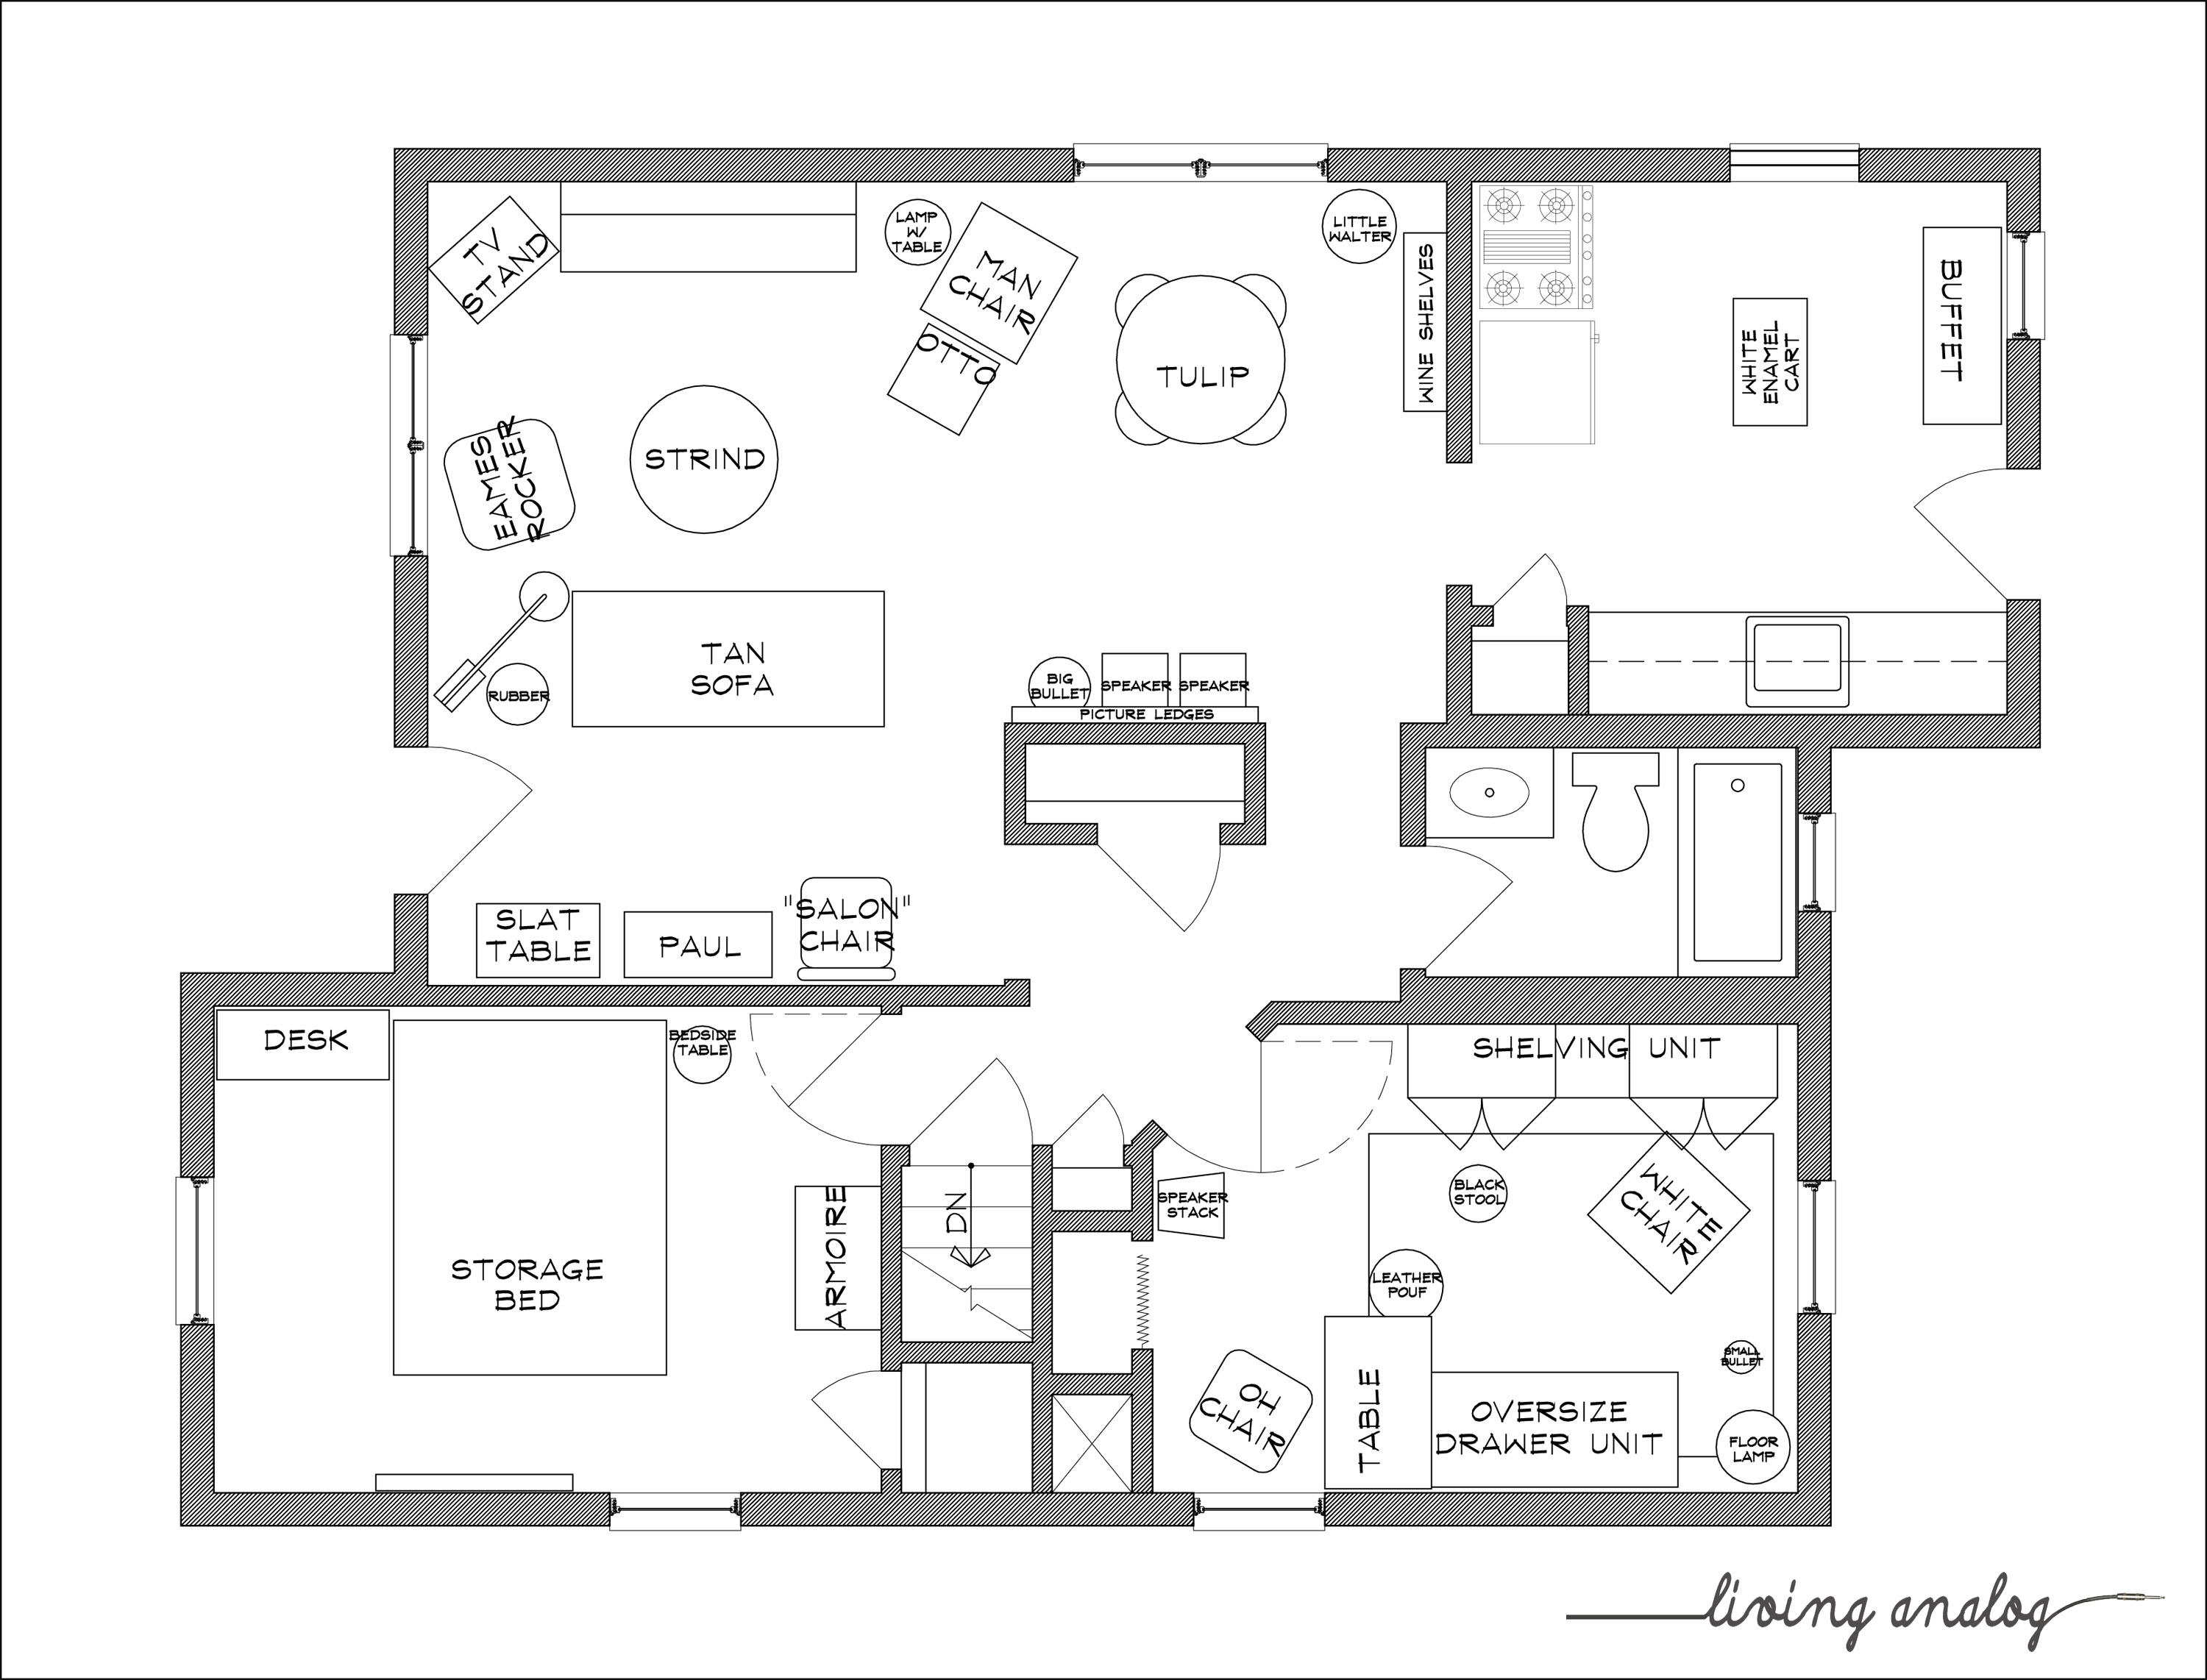 Free Furniture Templates For Floor Plans